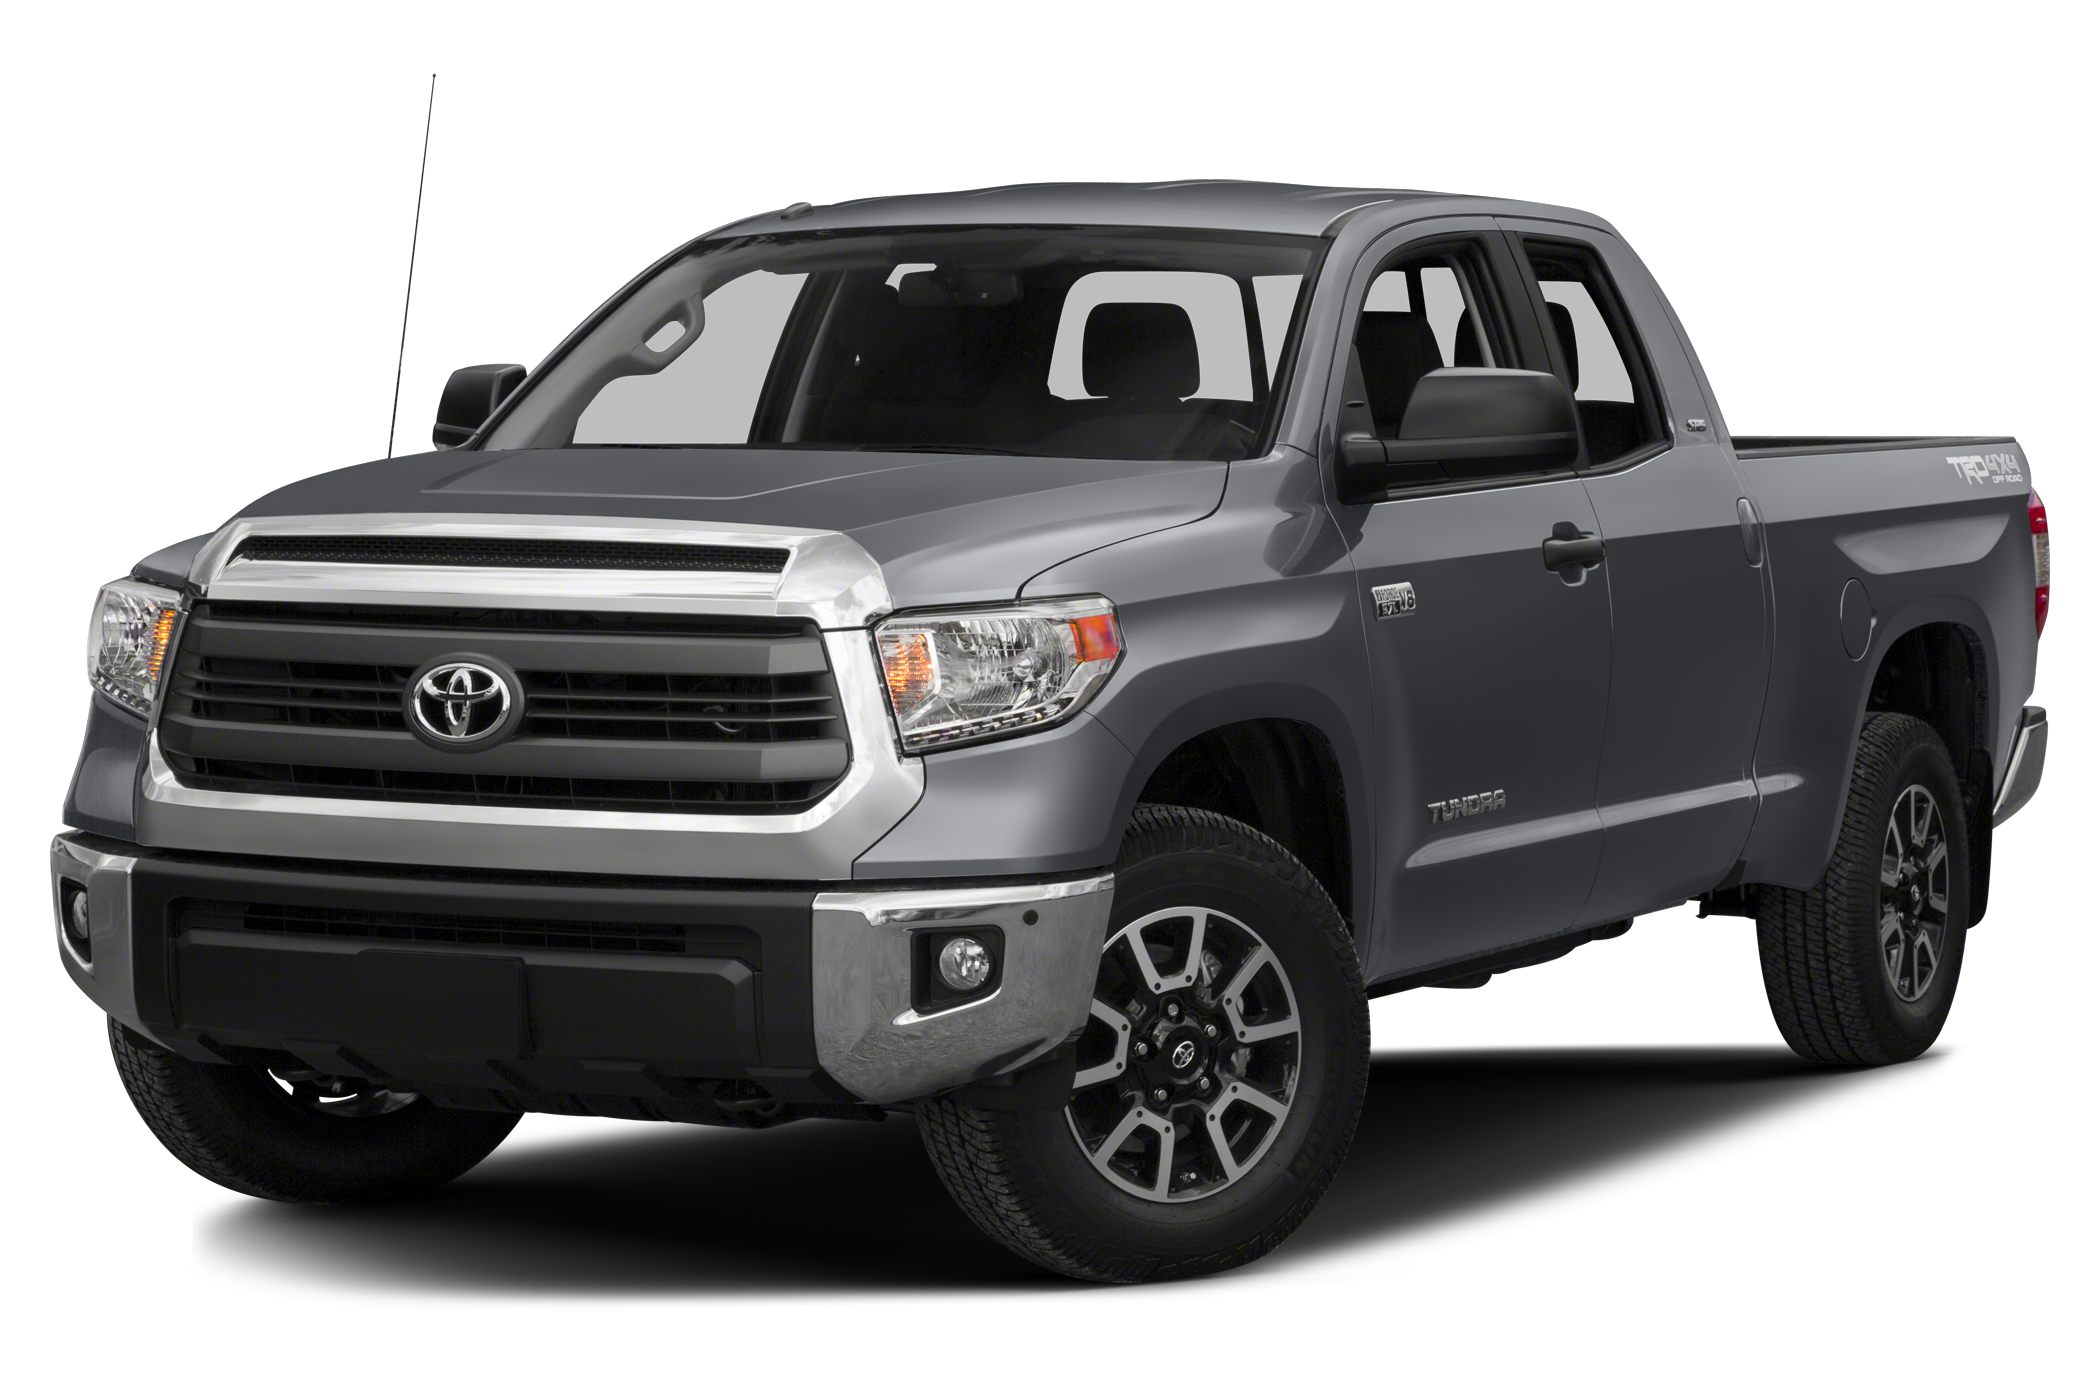 2015 Toyota Tundra SR5 Crew Cab Pickup for sale in Pensacola for $37,876 with 1 miles.